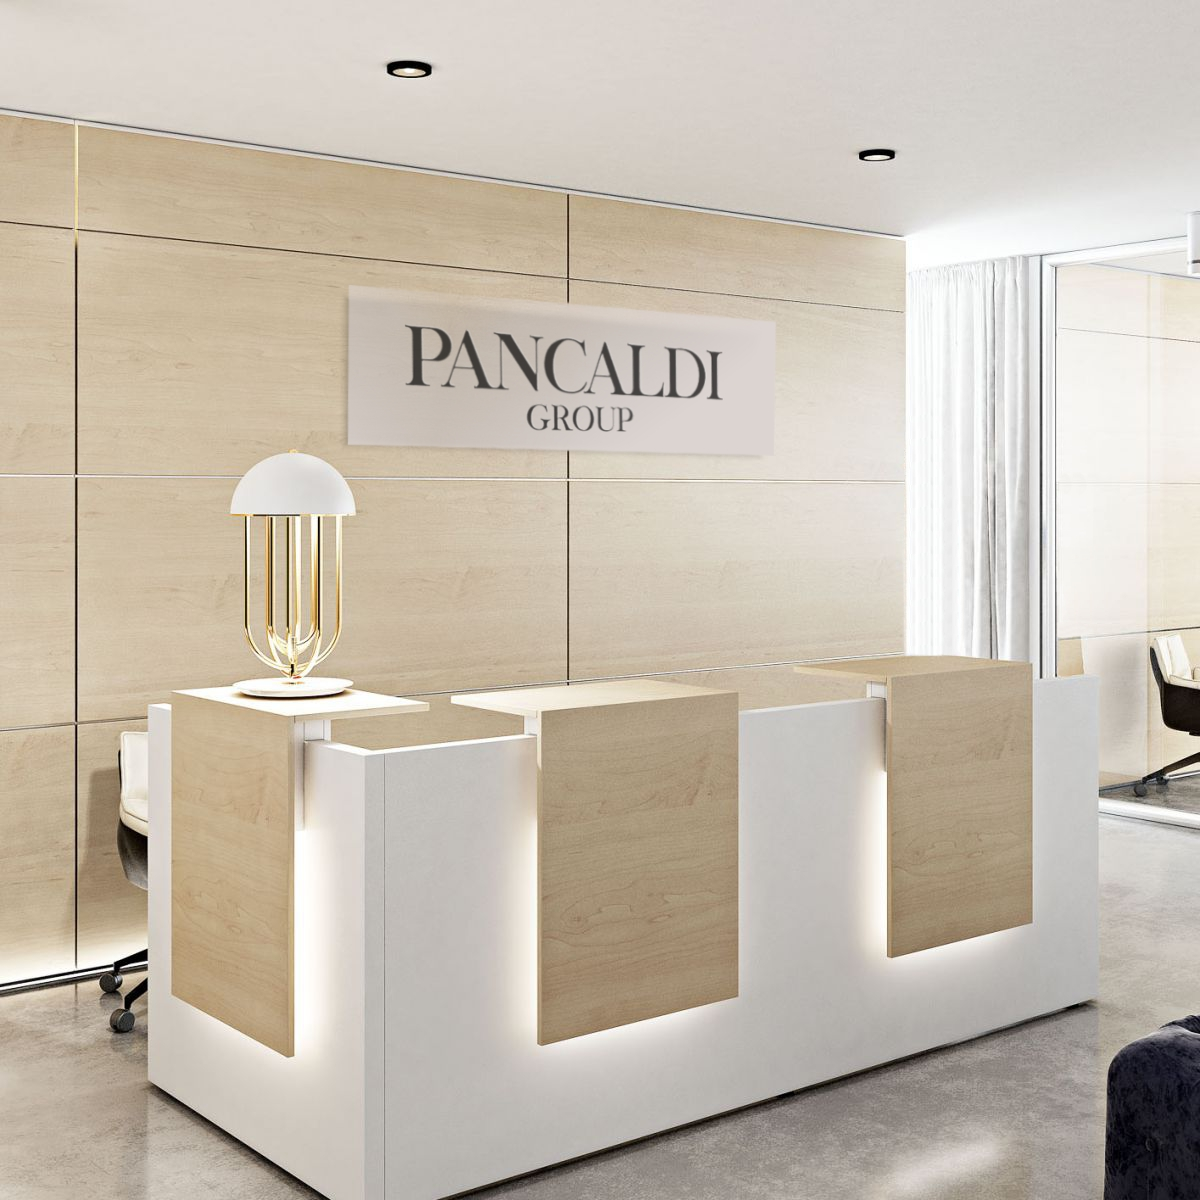 pancaldi_offices_3